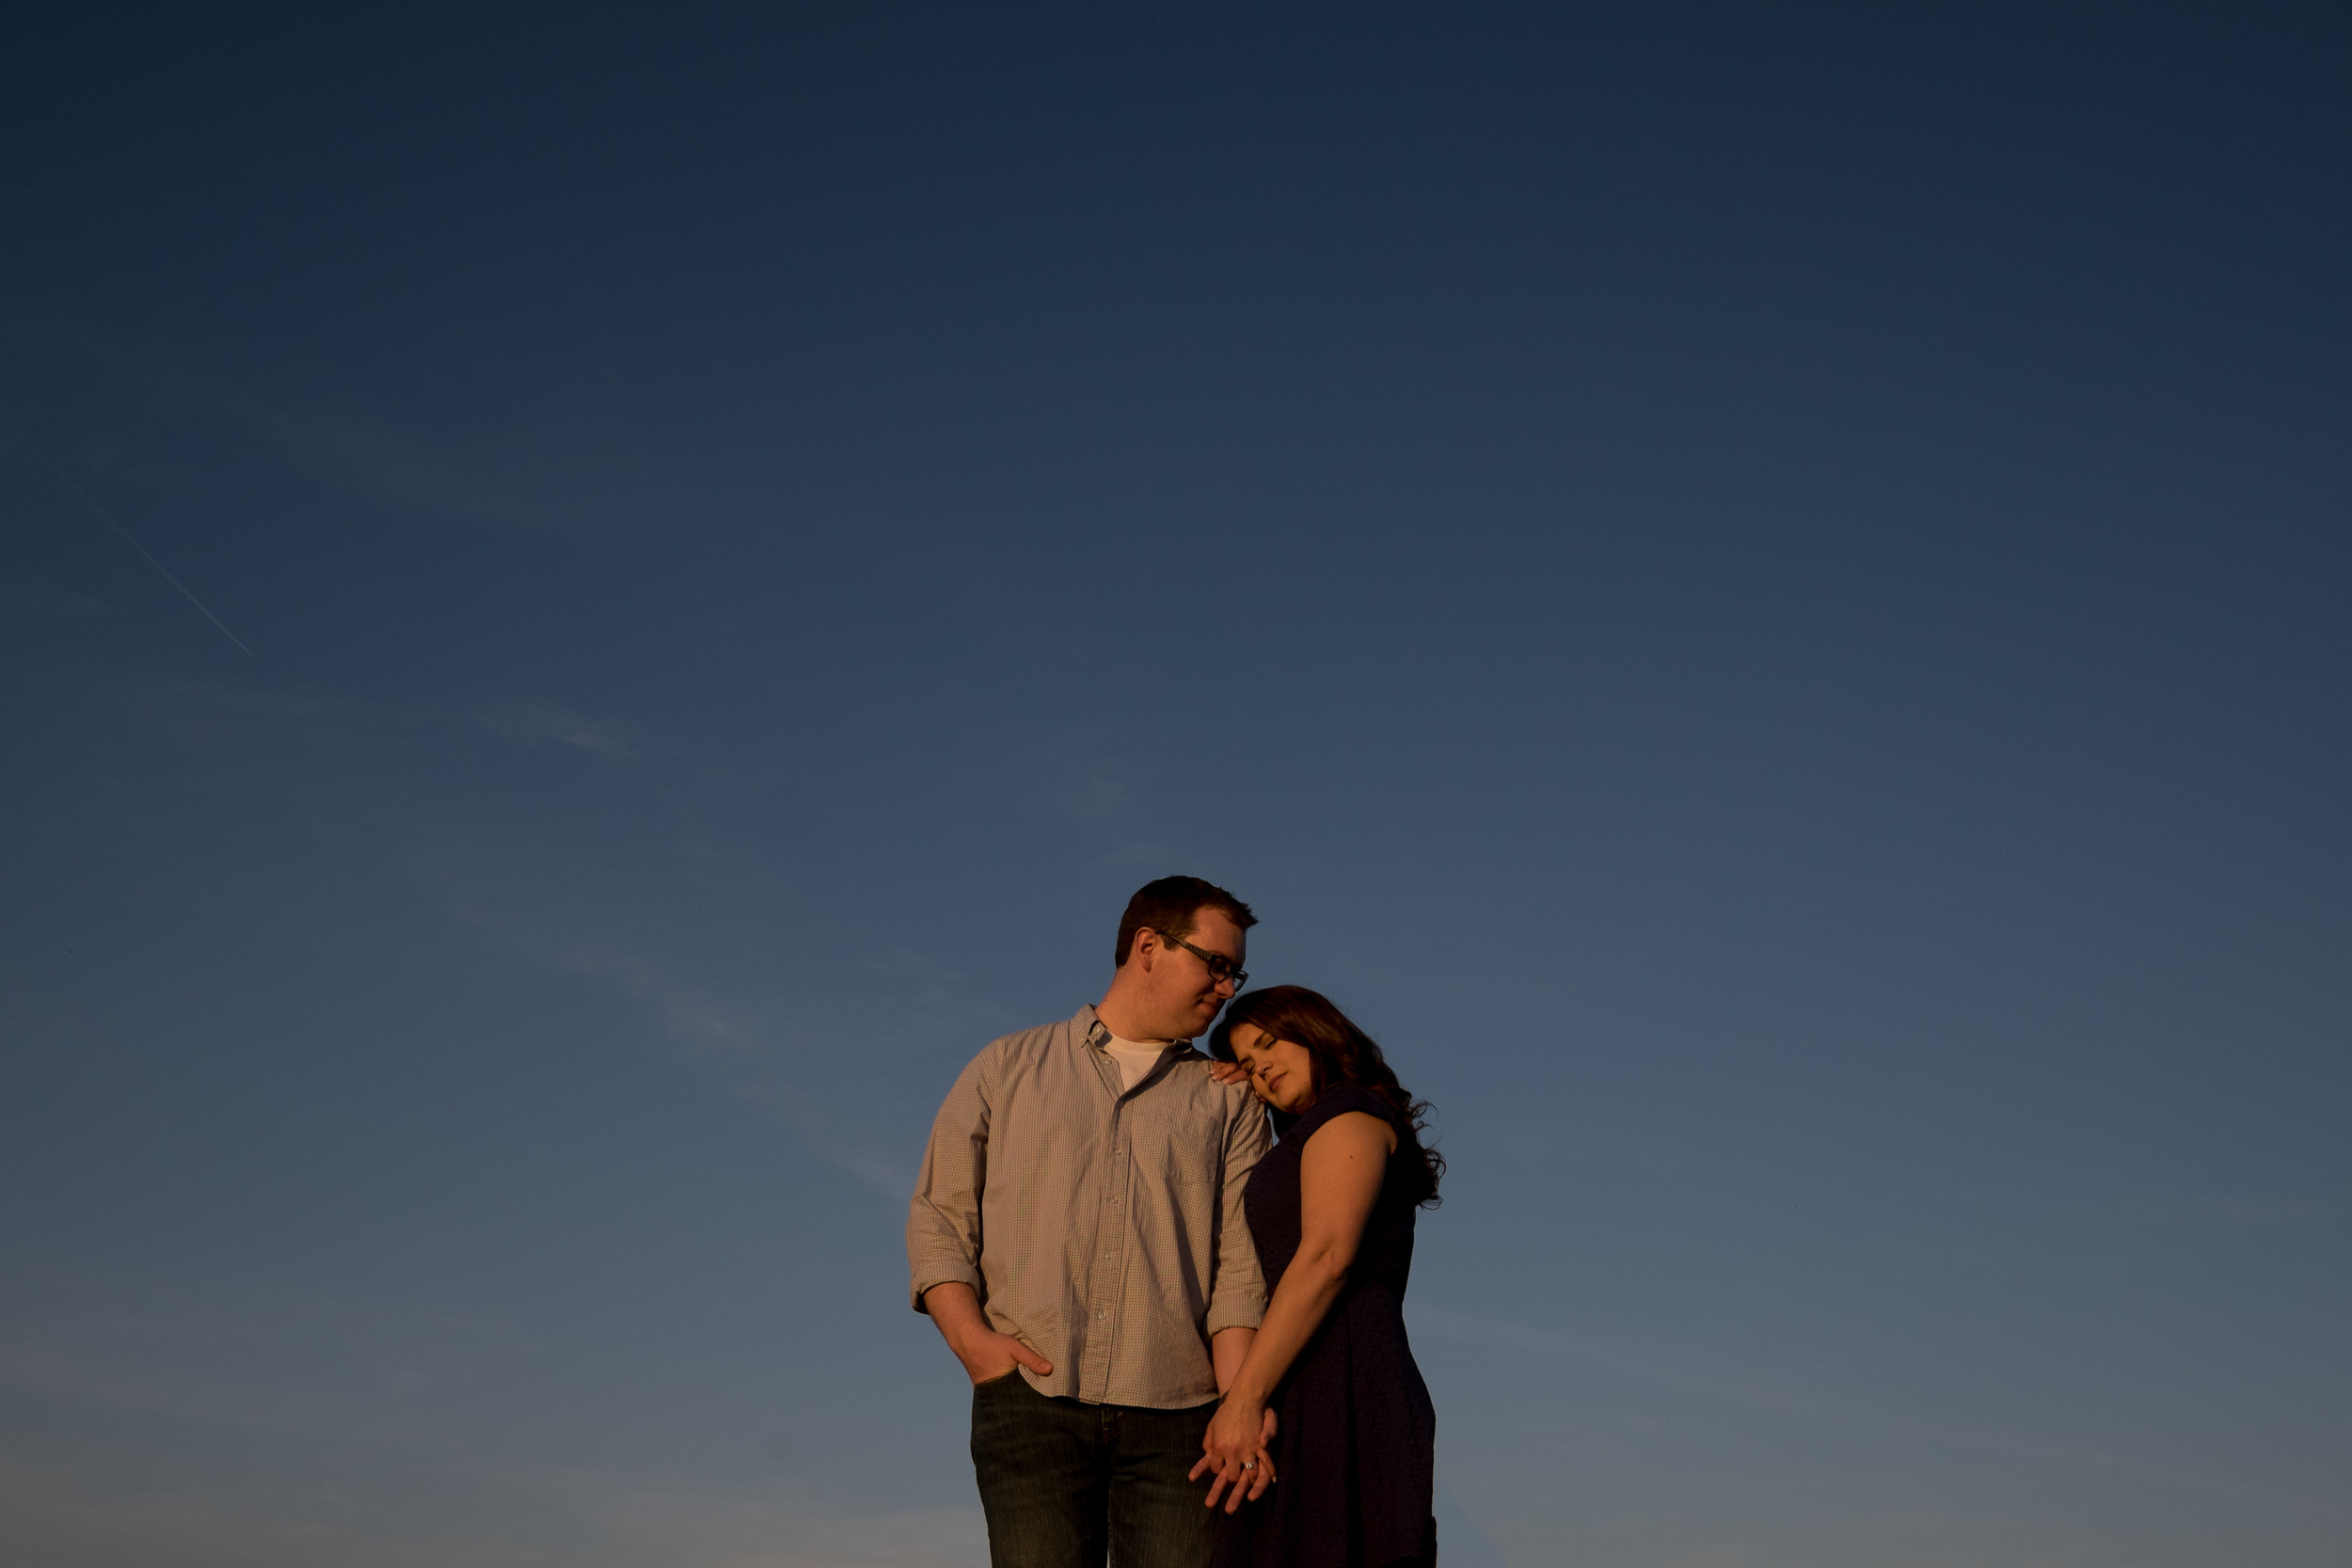 ontario_farm_engagement-003.jpg